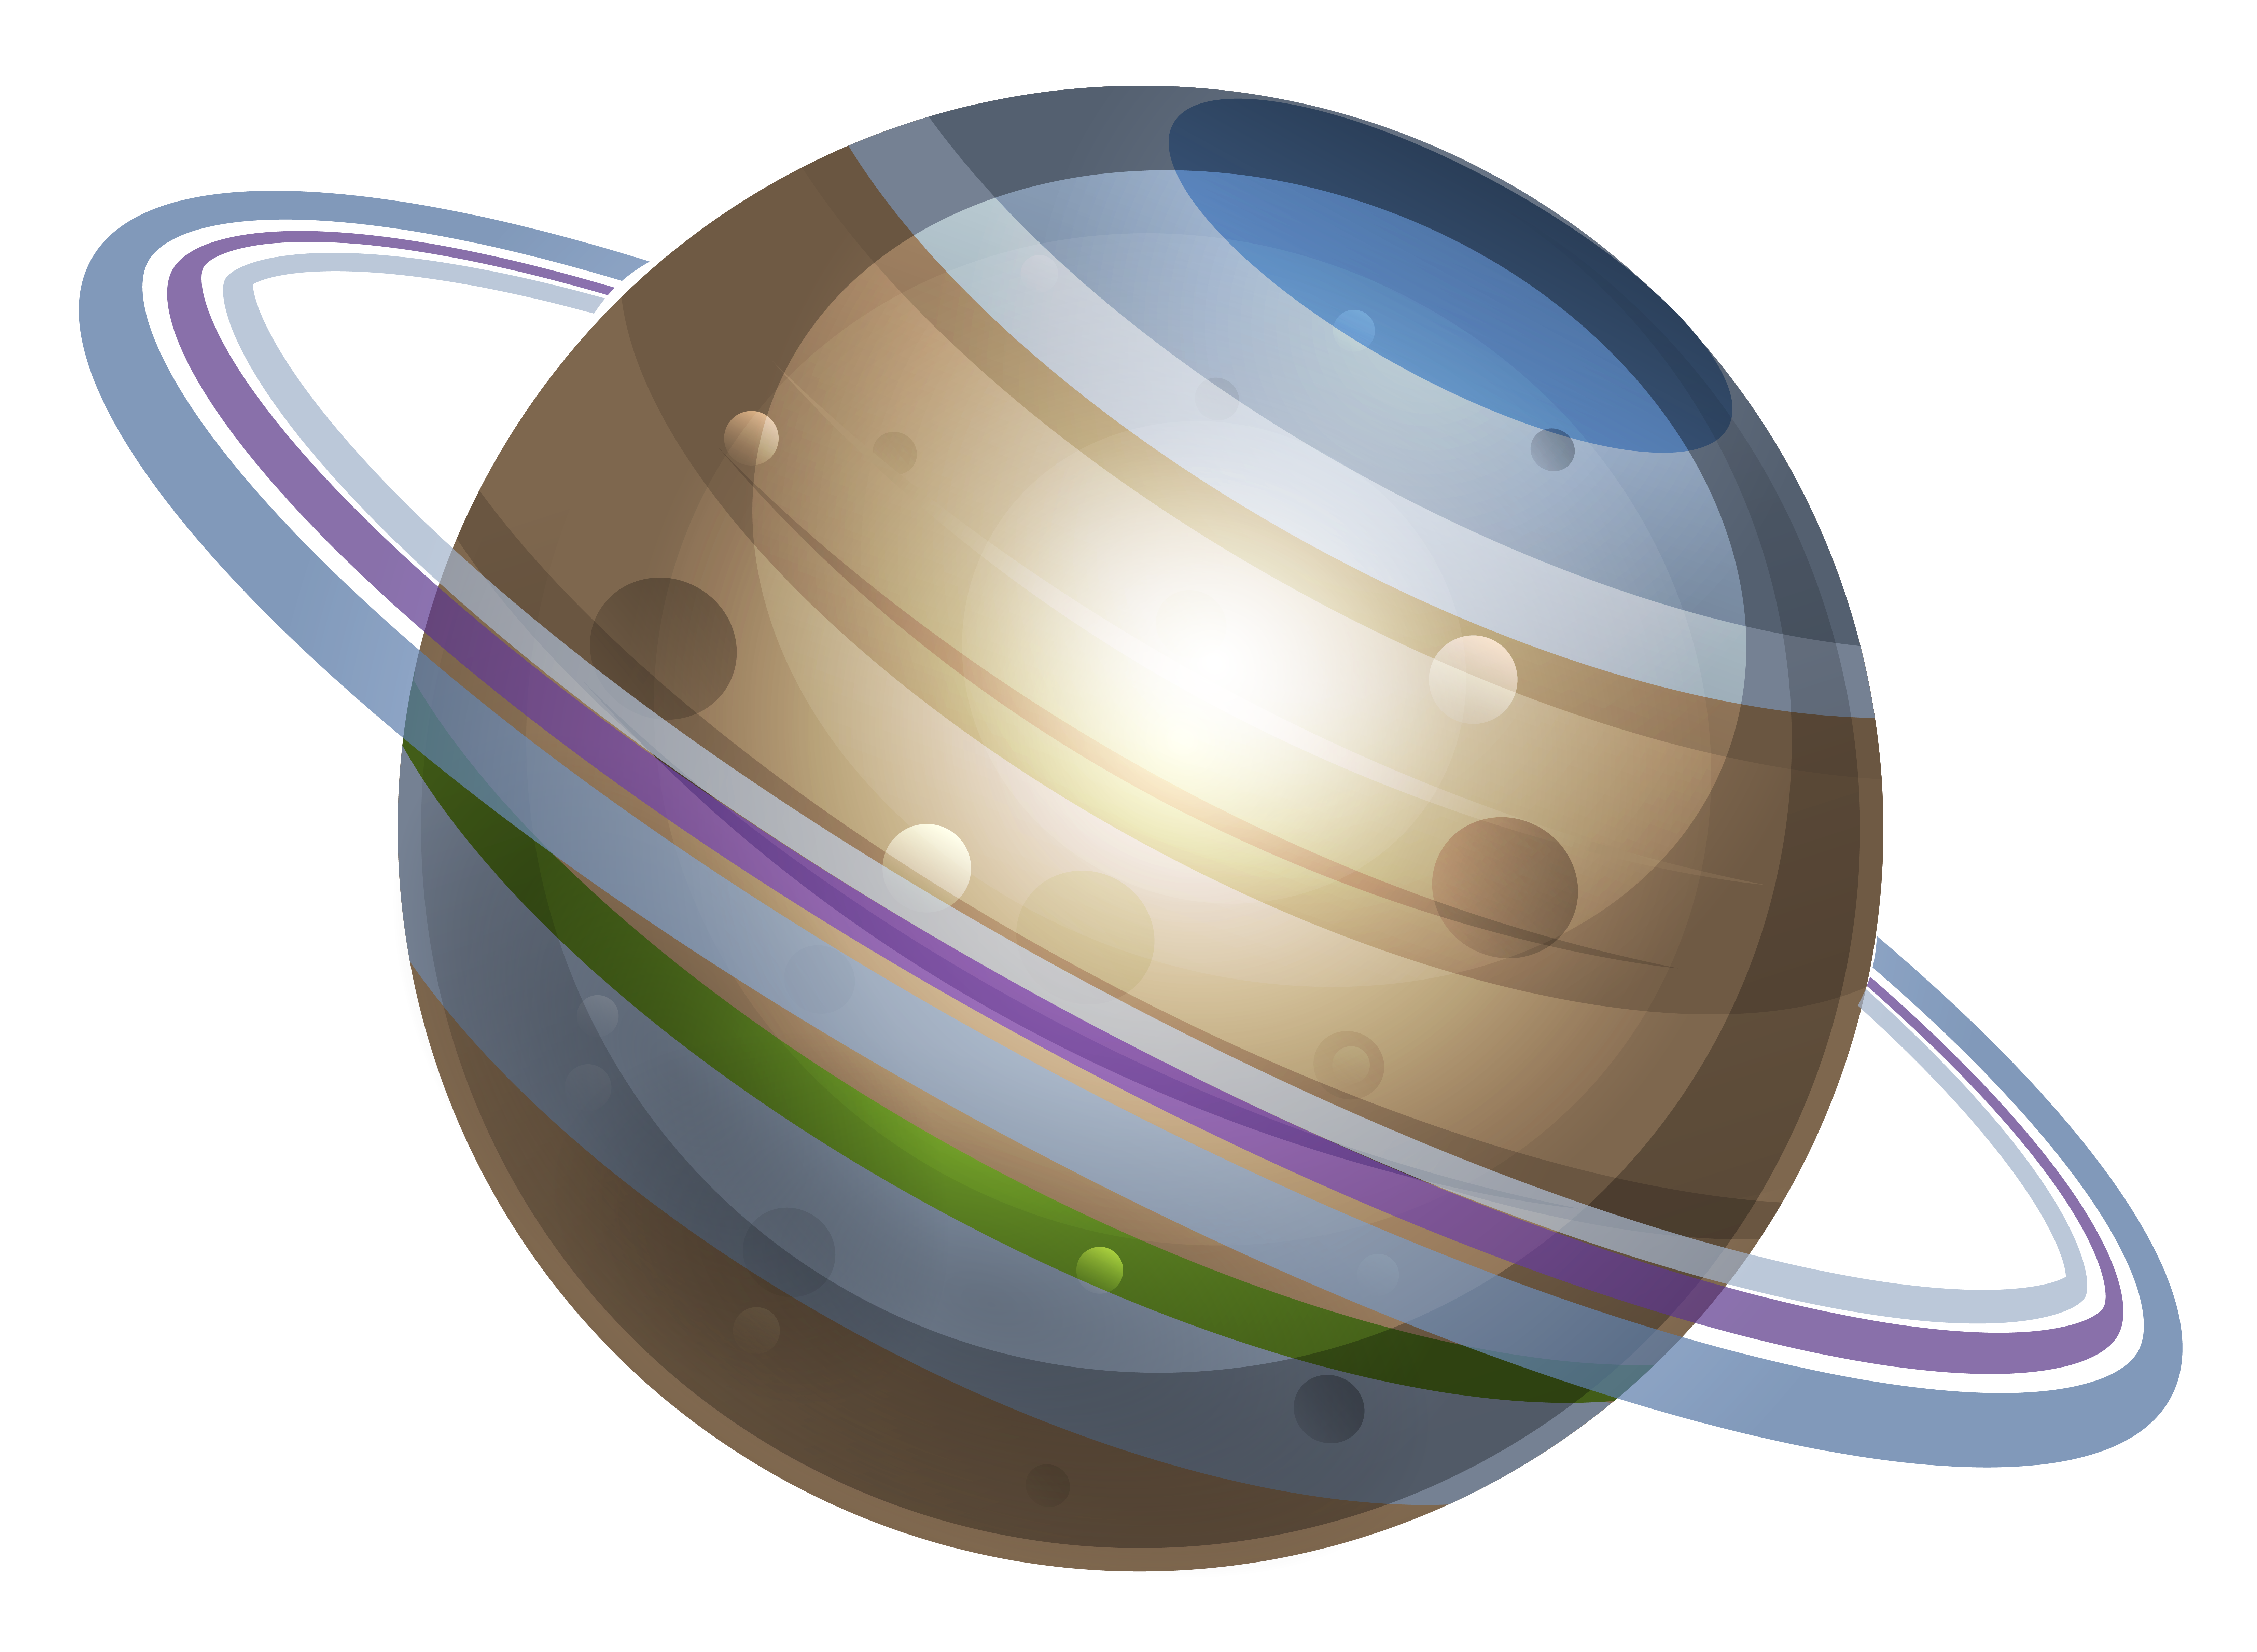 graphic royalty free download Planeten clipart. Physic minimalistics co